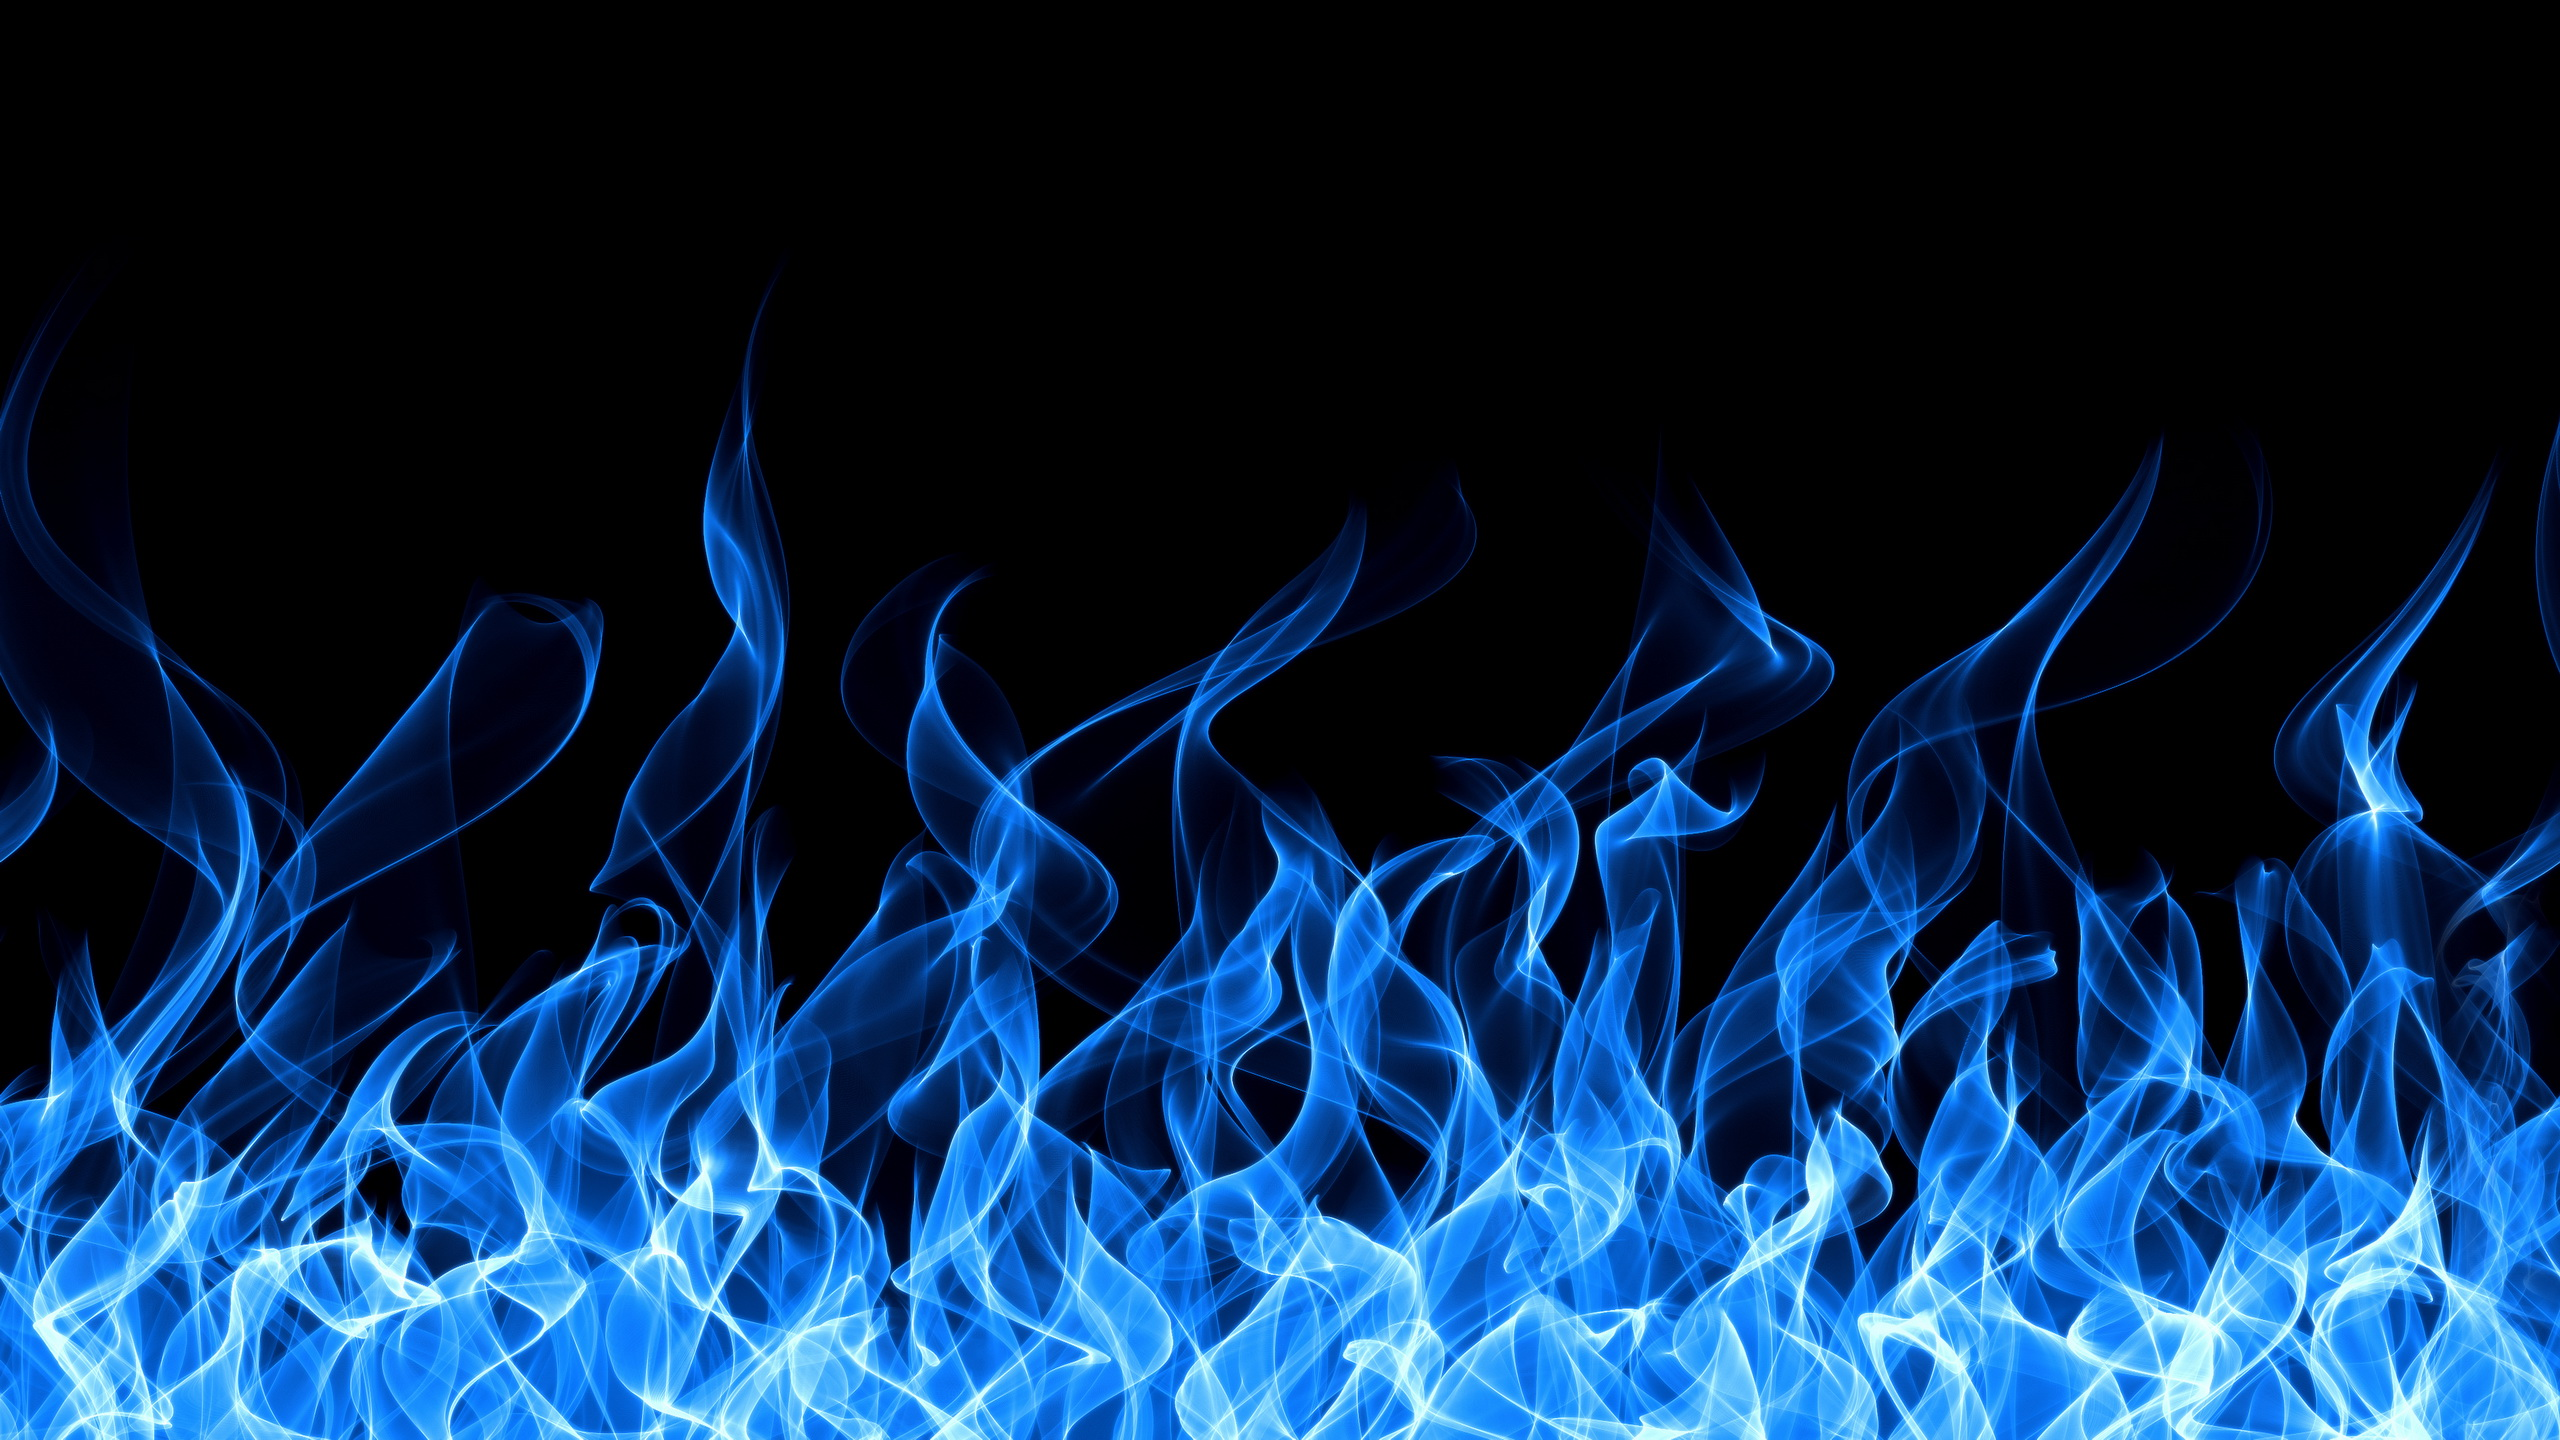 7 Flame HD Wallpapers | Background Images - Wallpaper Abyss